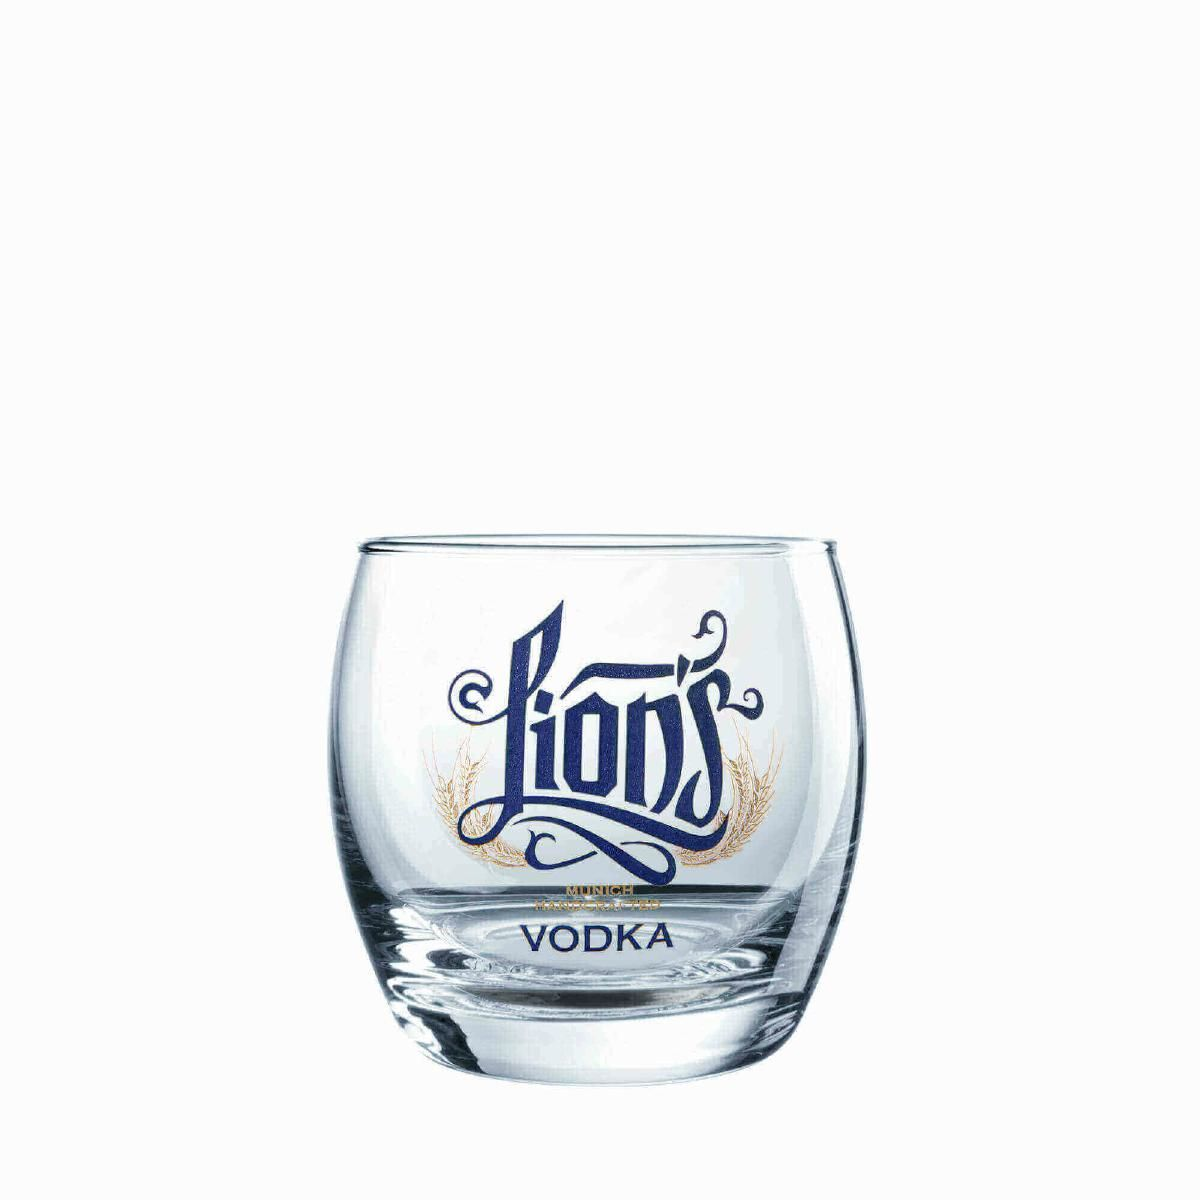 LION's Munich Handcrafted Vodka_Glas_Tumbler